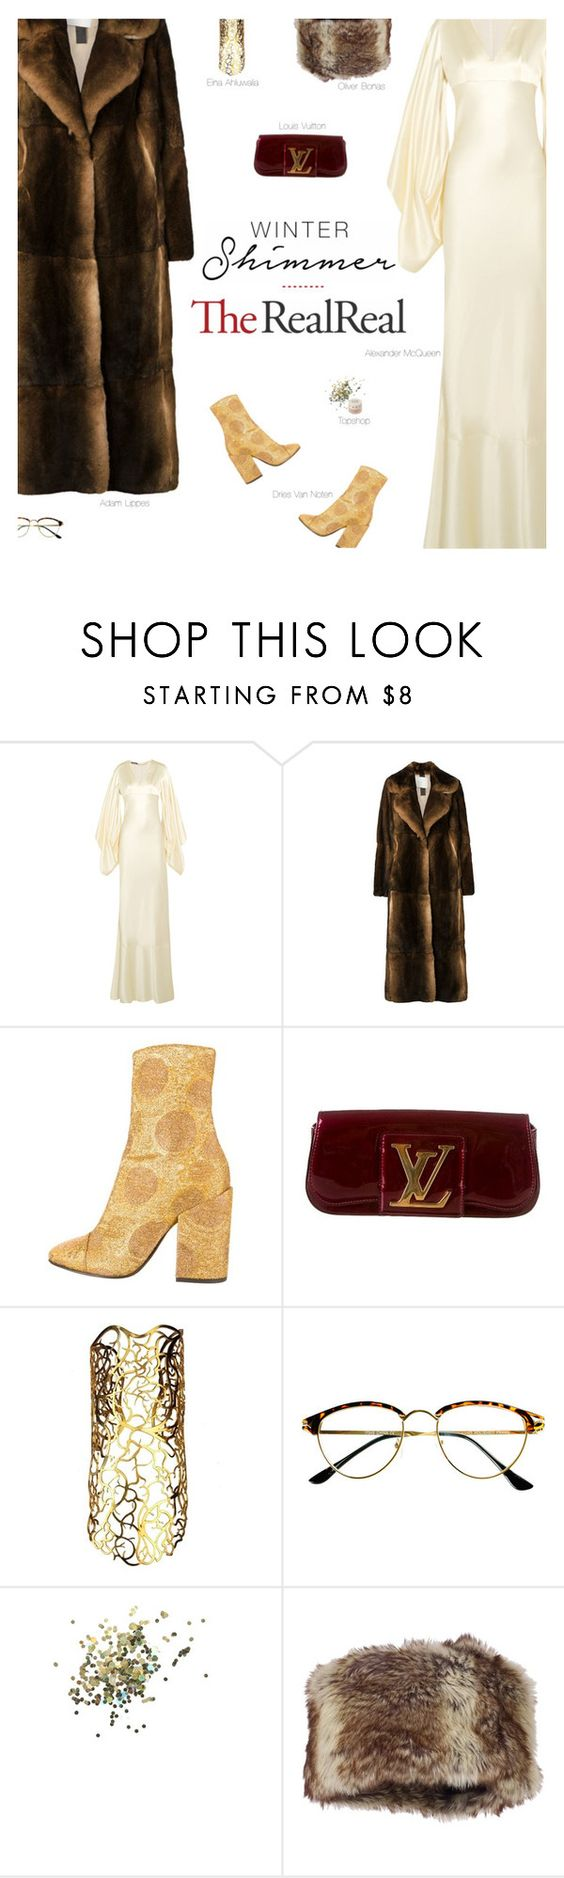 """Holiday Sparkle With The RealReal: Contest Entry"" by amberelb ❤ liked on Polyvore featuring Alexander McQueen, Dries Van Noten, Louis Vuitton, Eina Ahluwalia, Retrò and Topshop"